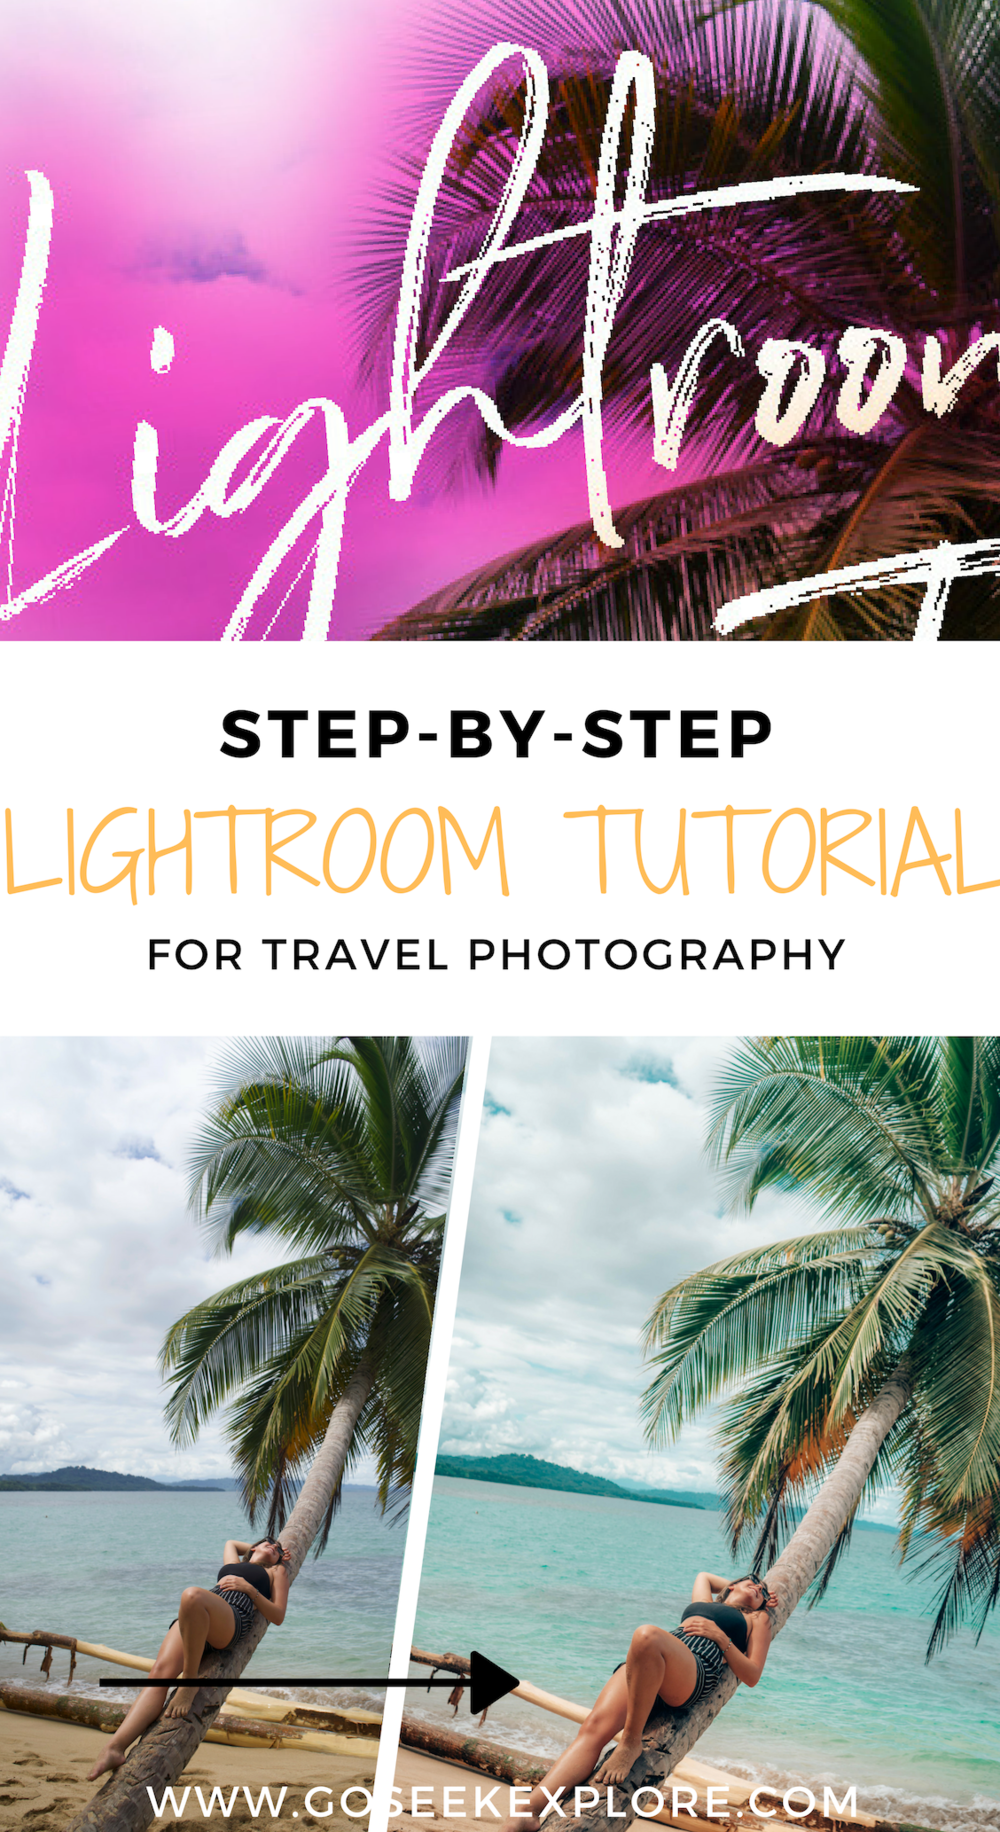 This tutorial shows you how to edit tropical photos in Lightroom! Get a summer aesthetic, wanderlust vibes, or bright and colorful photos with these Lightroom tips. / goseekexplore.com @allyarcher